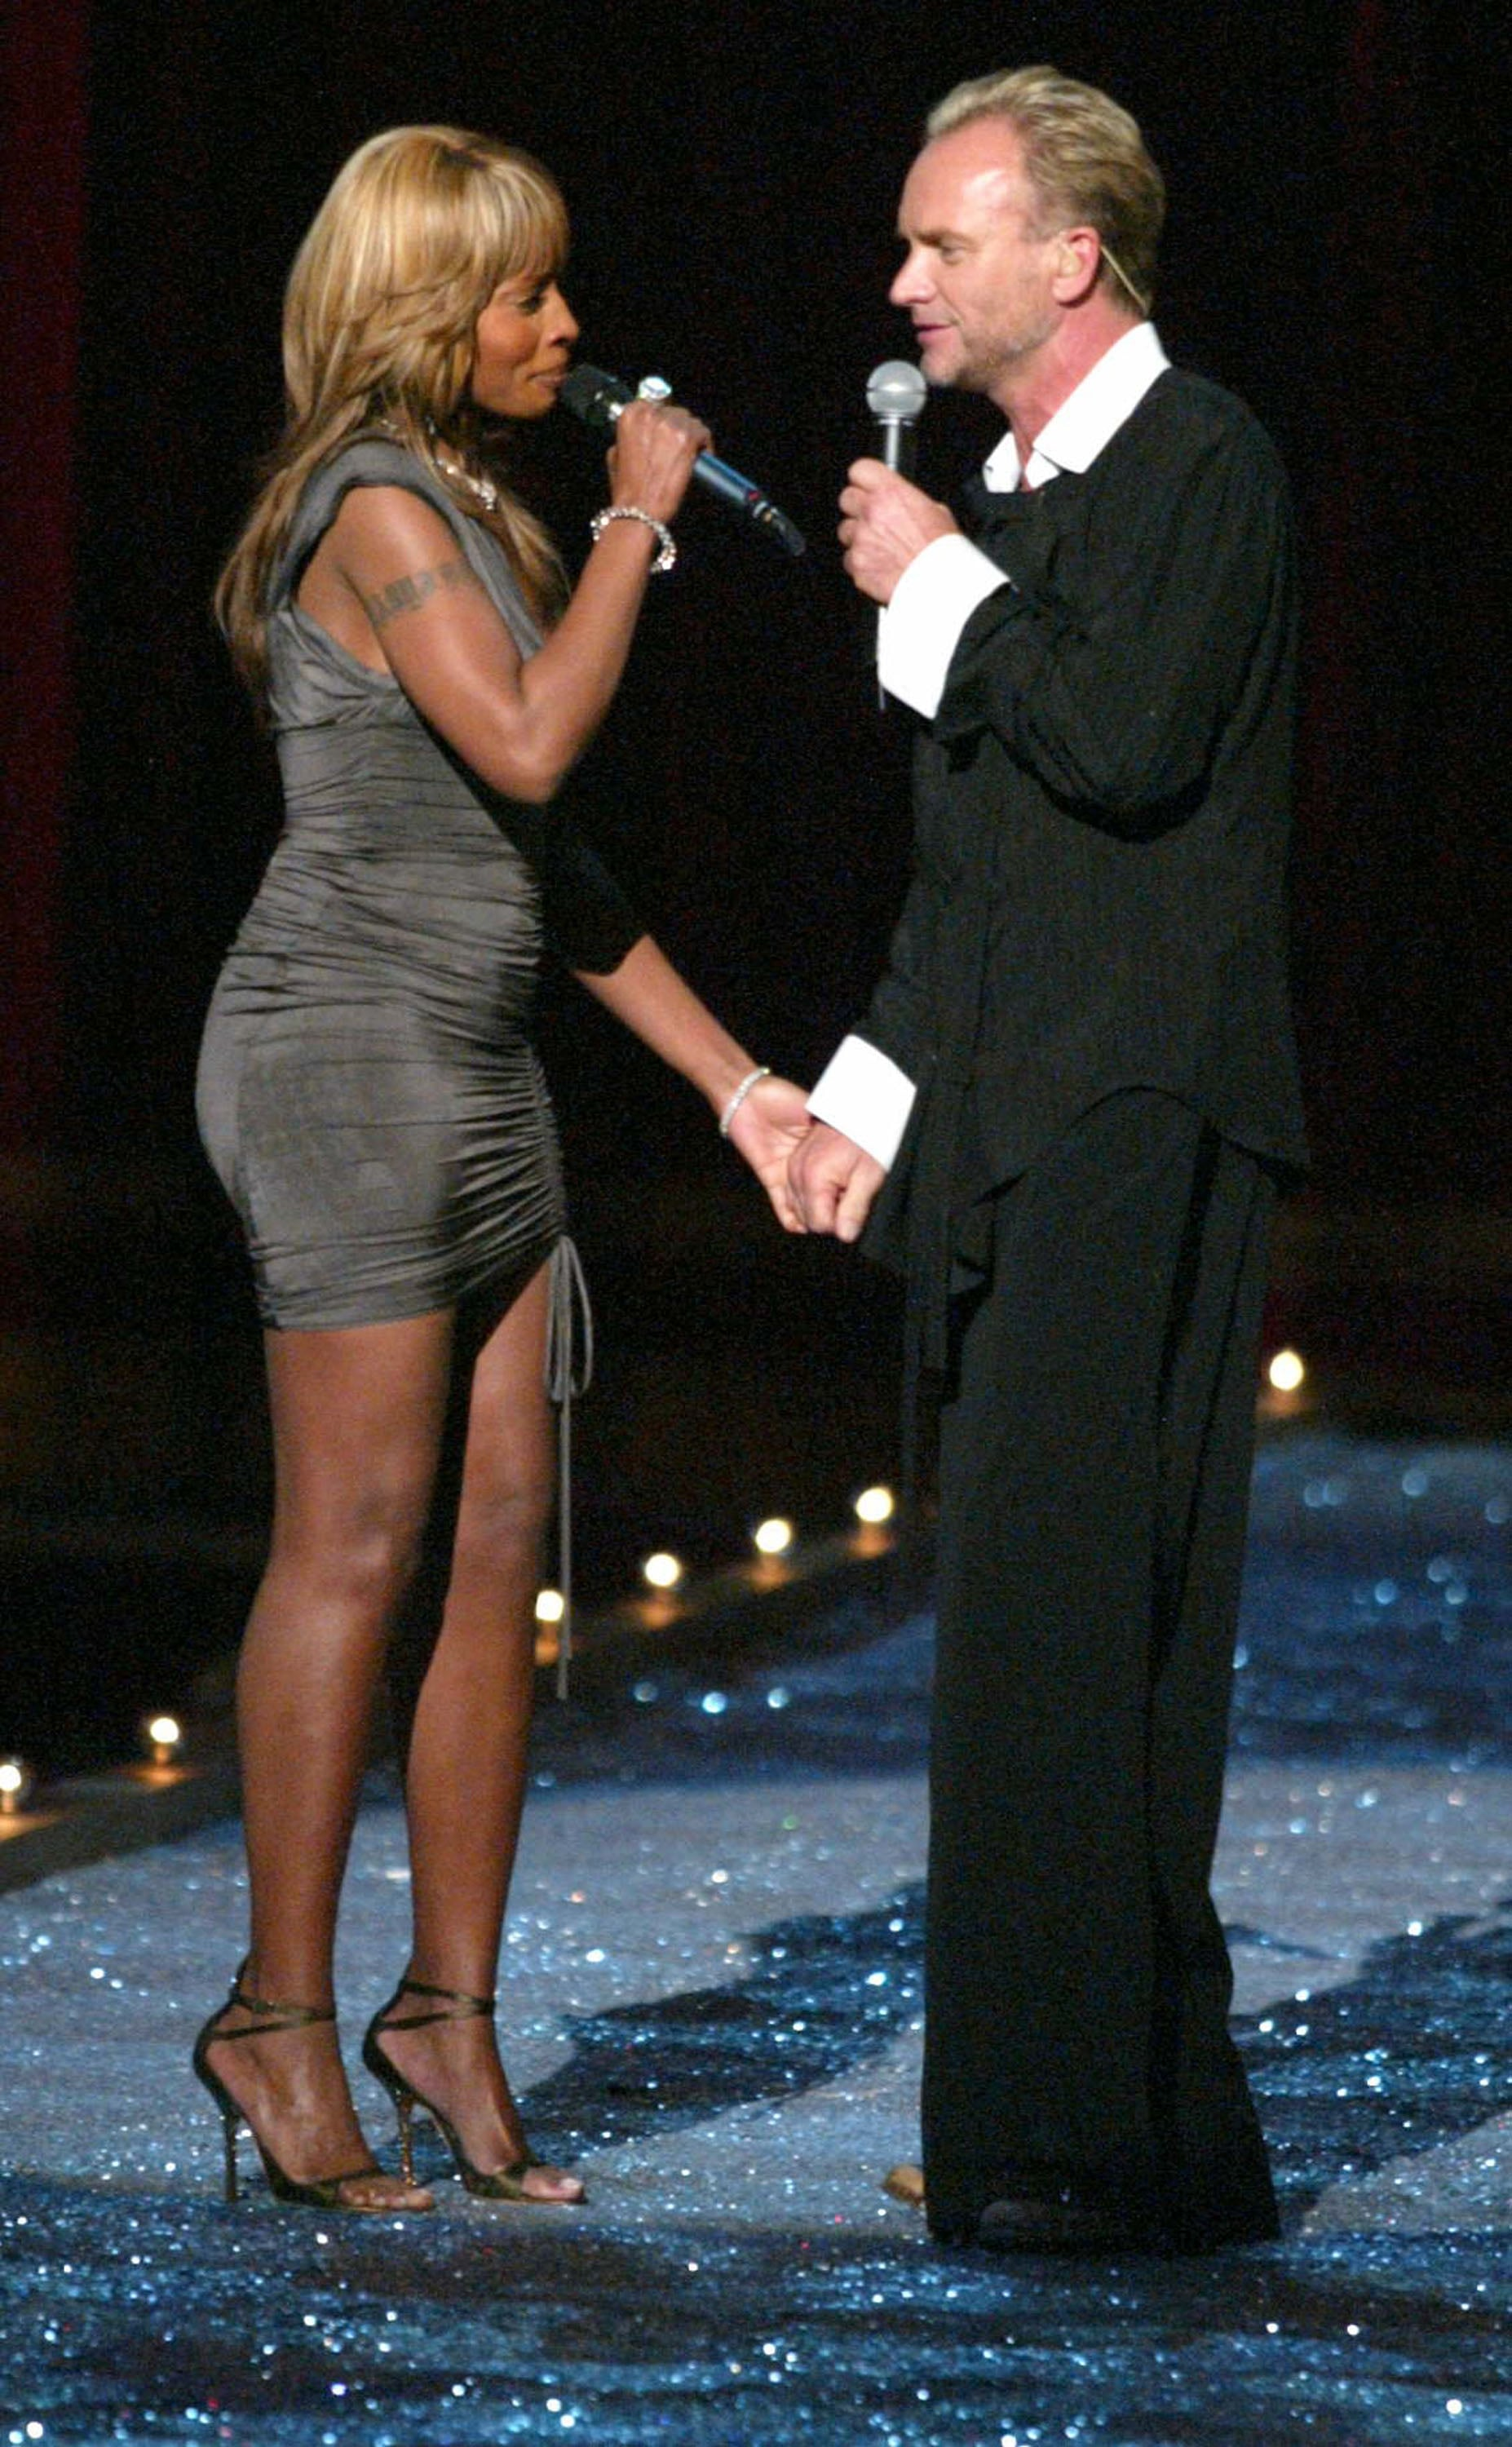 Mary J. Blige and Sting shared the stage for a romantic performance during the 2003 show.